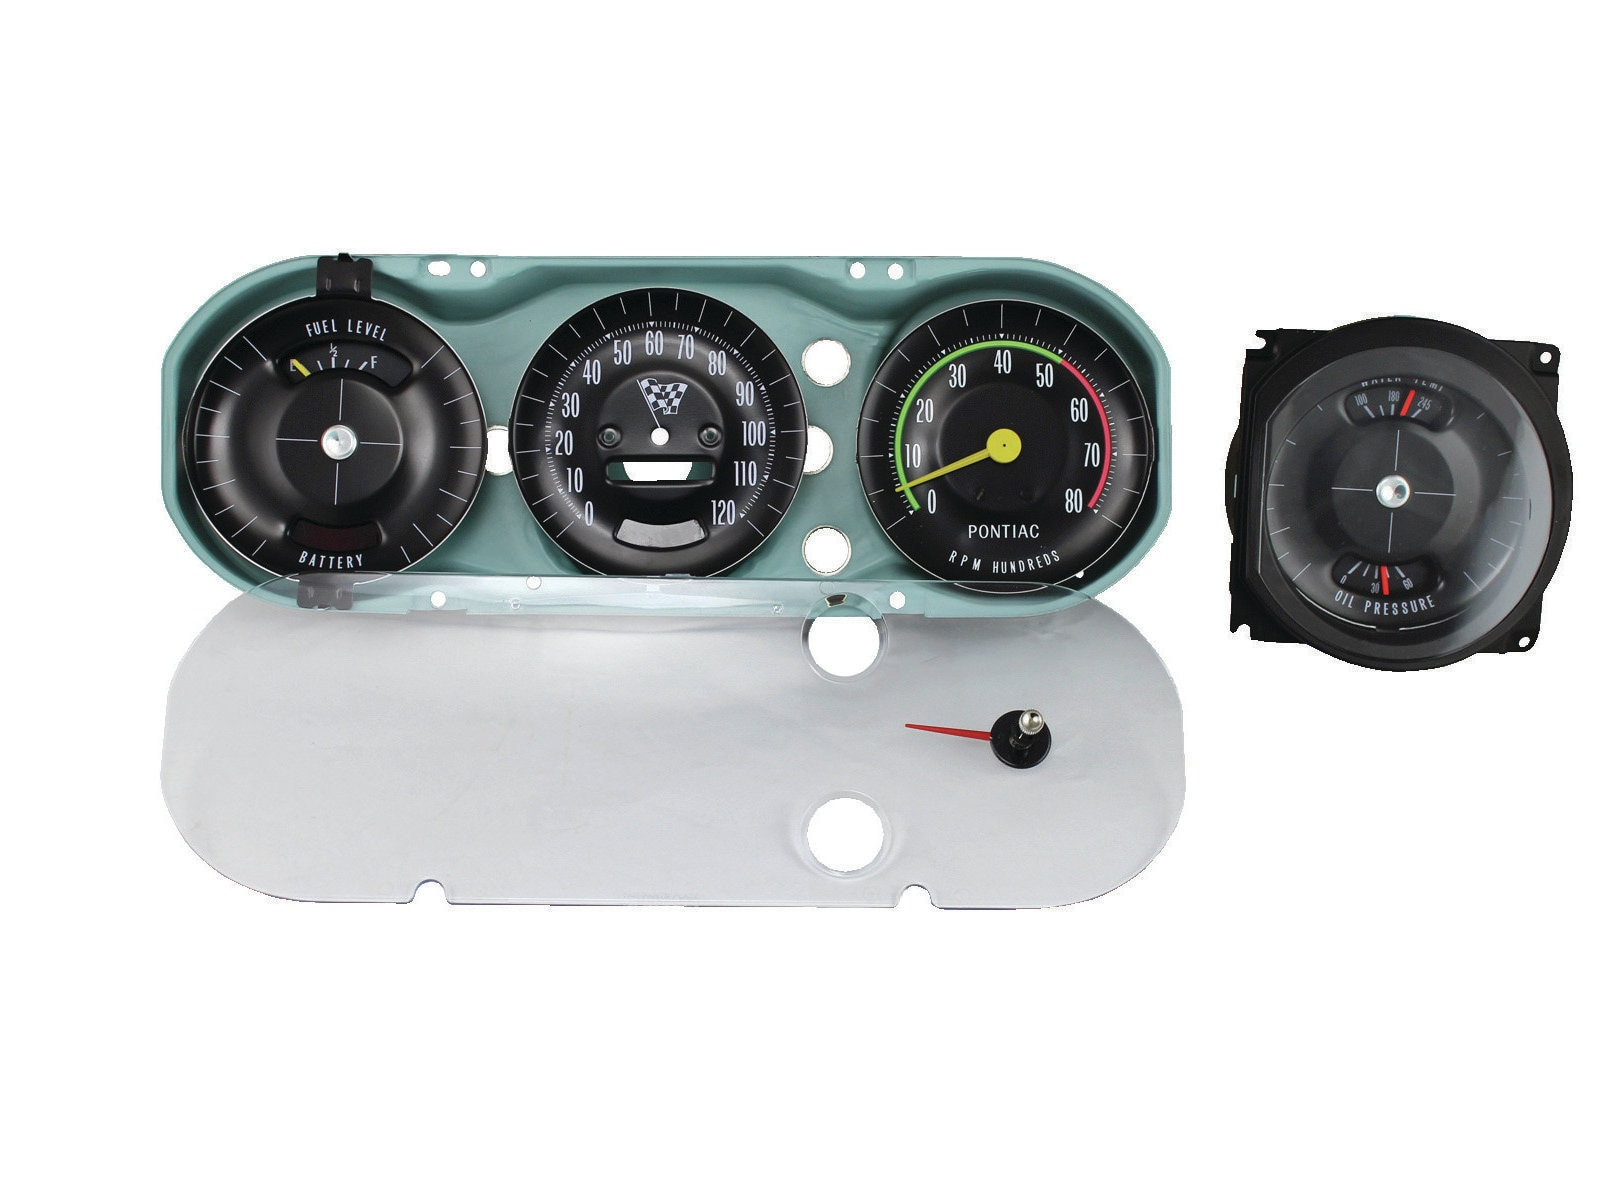 small resolution of 1965 gto rally gauges wiring diagram diagram database reg mix 1965 gto rally gauges wiring diagram 1967